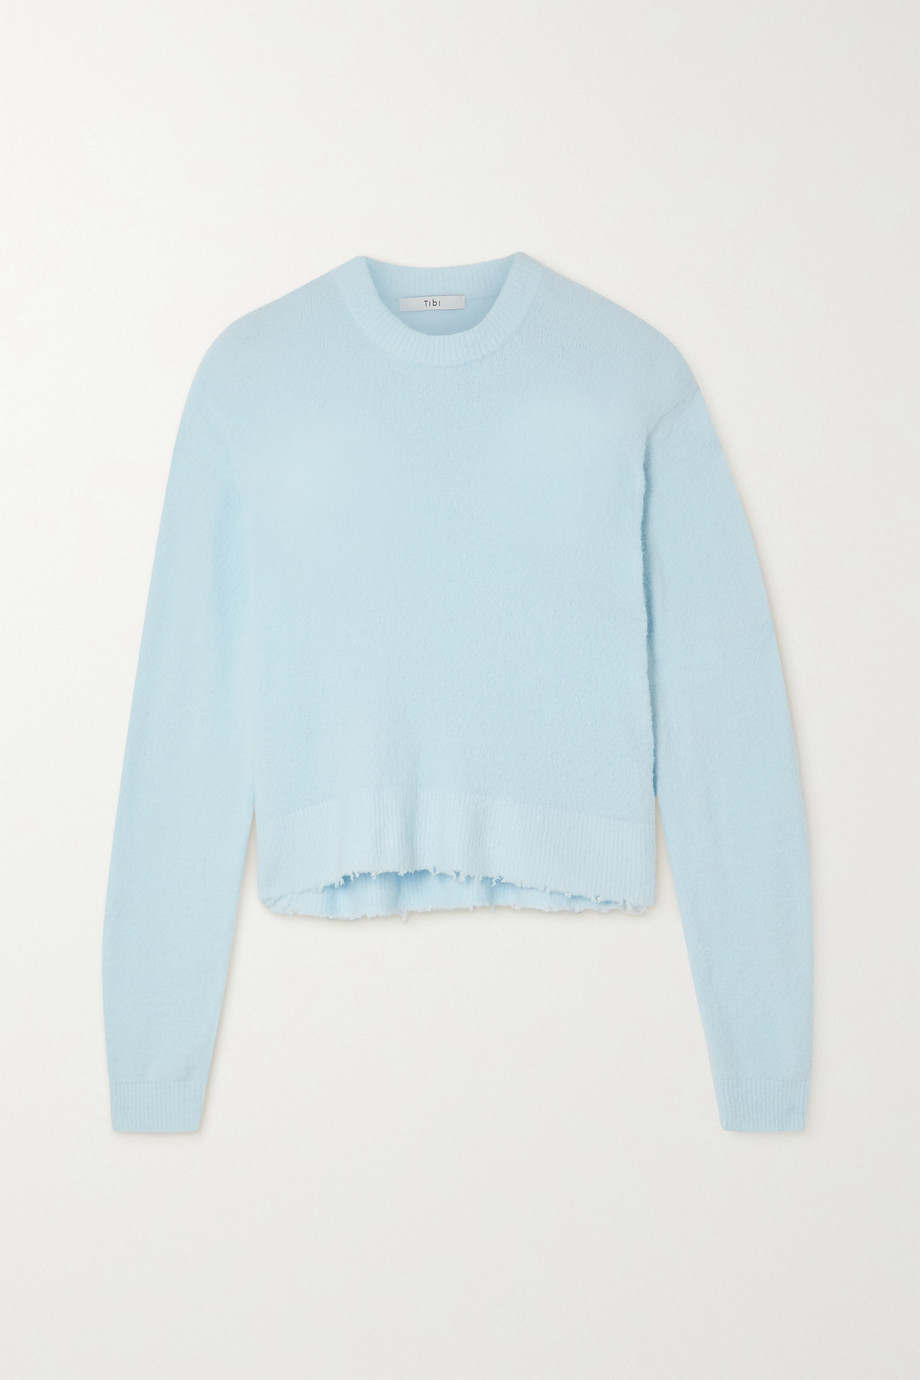 Tibi Distressed knitted sweater